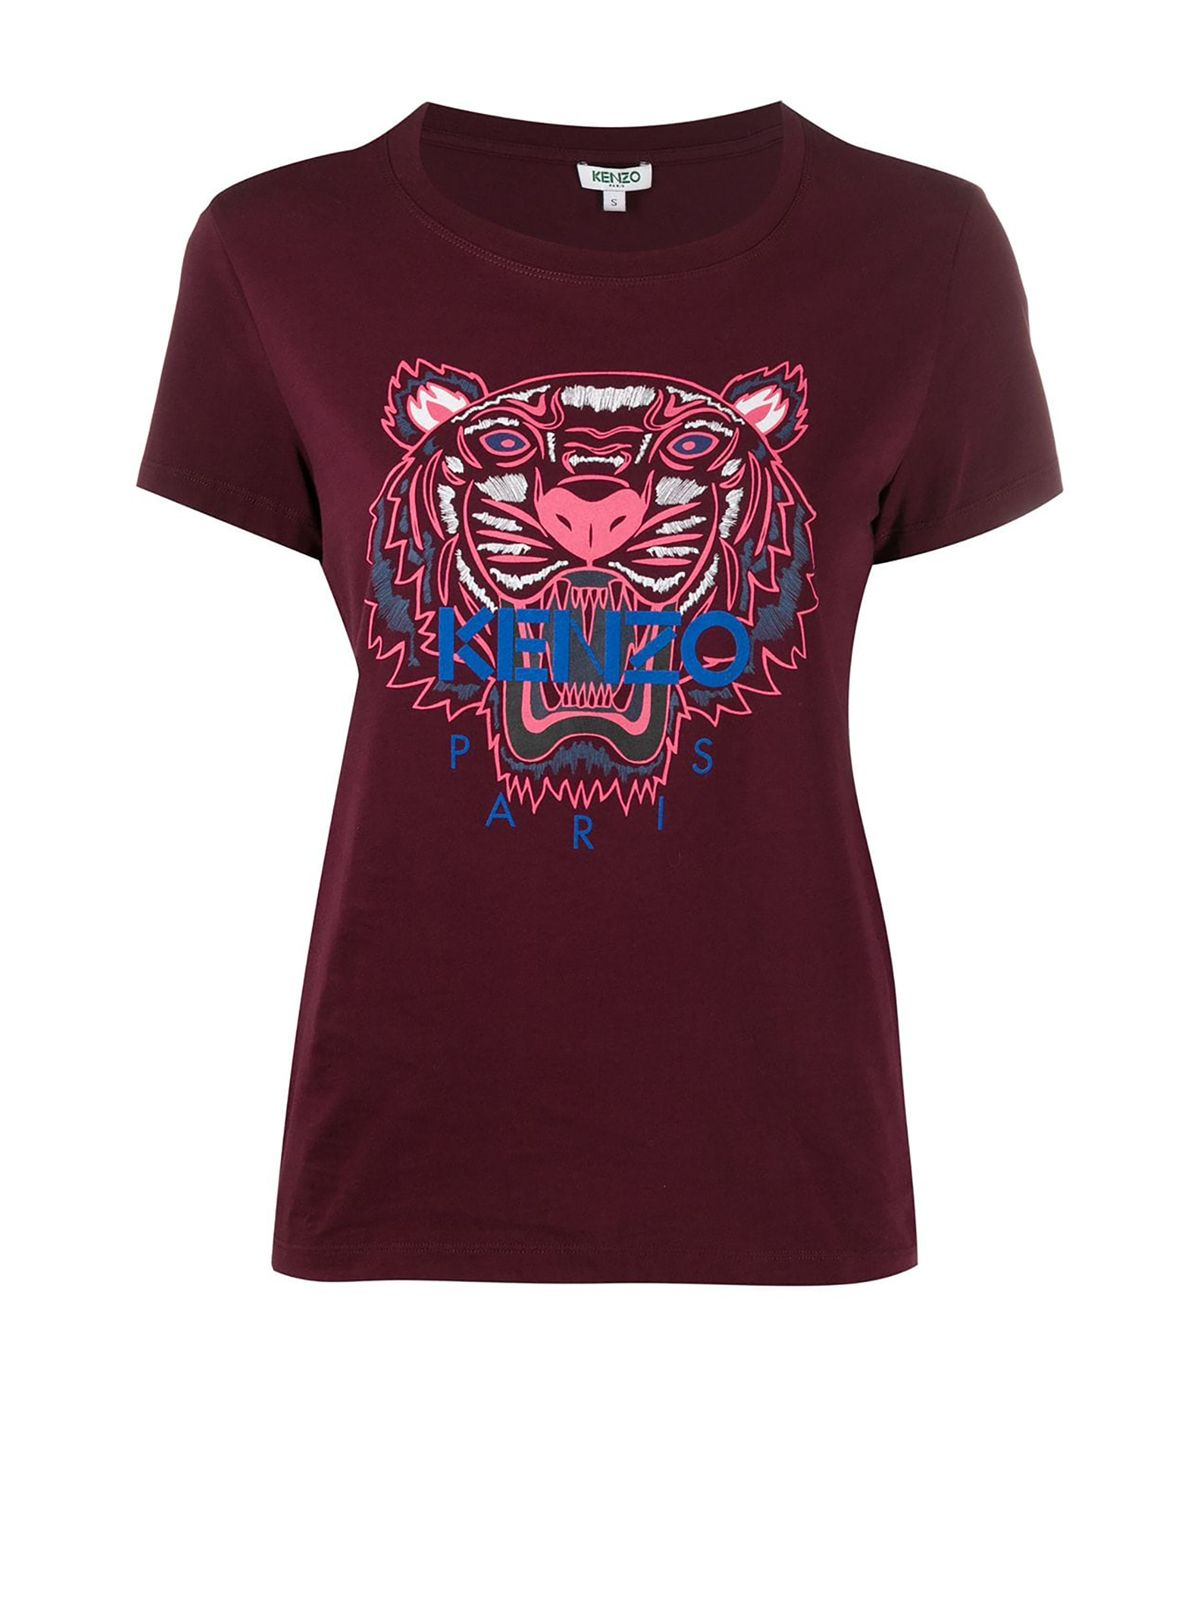 Kenzo Burgundy Cotton T-Shirt